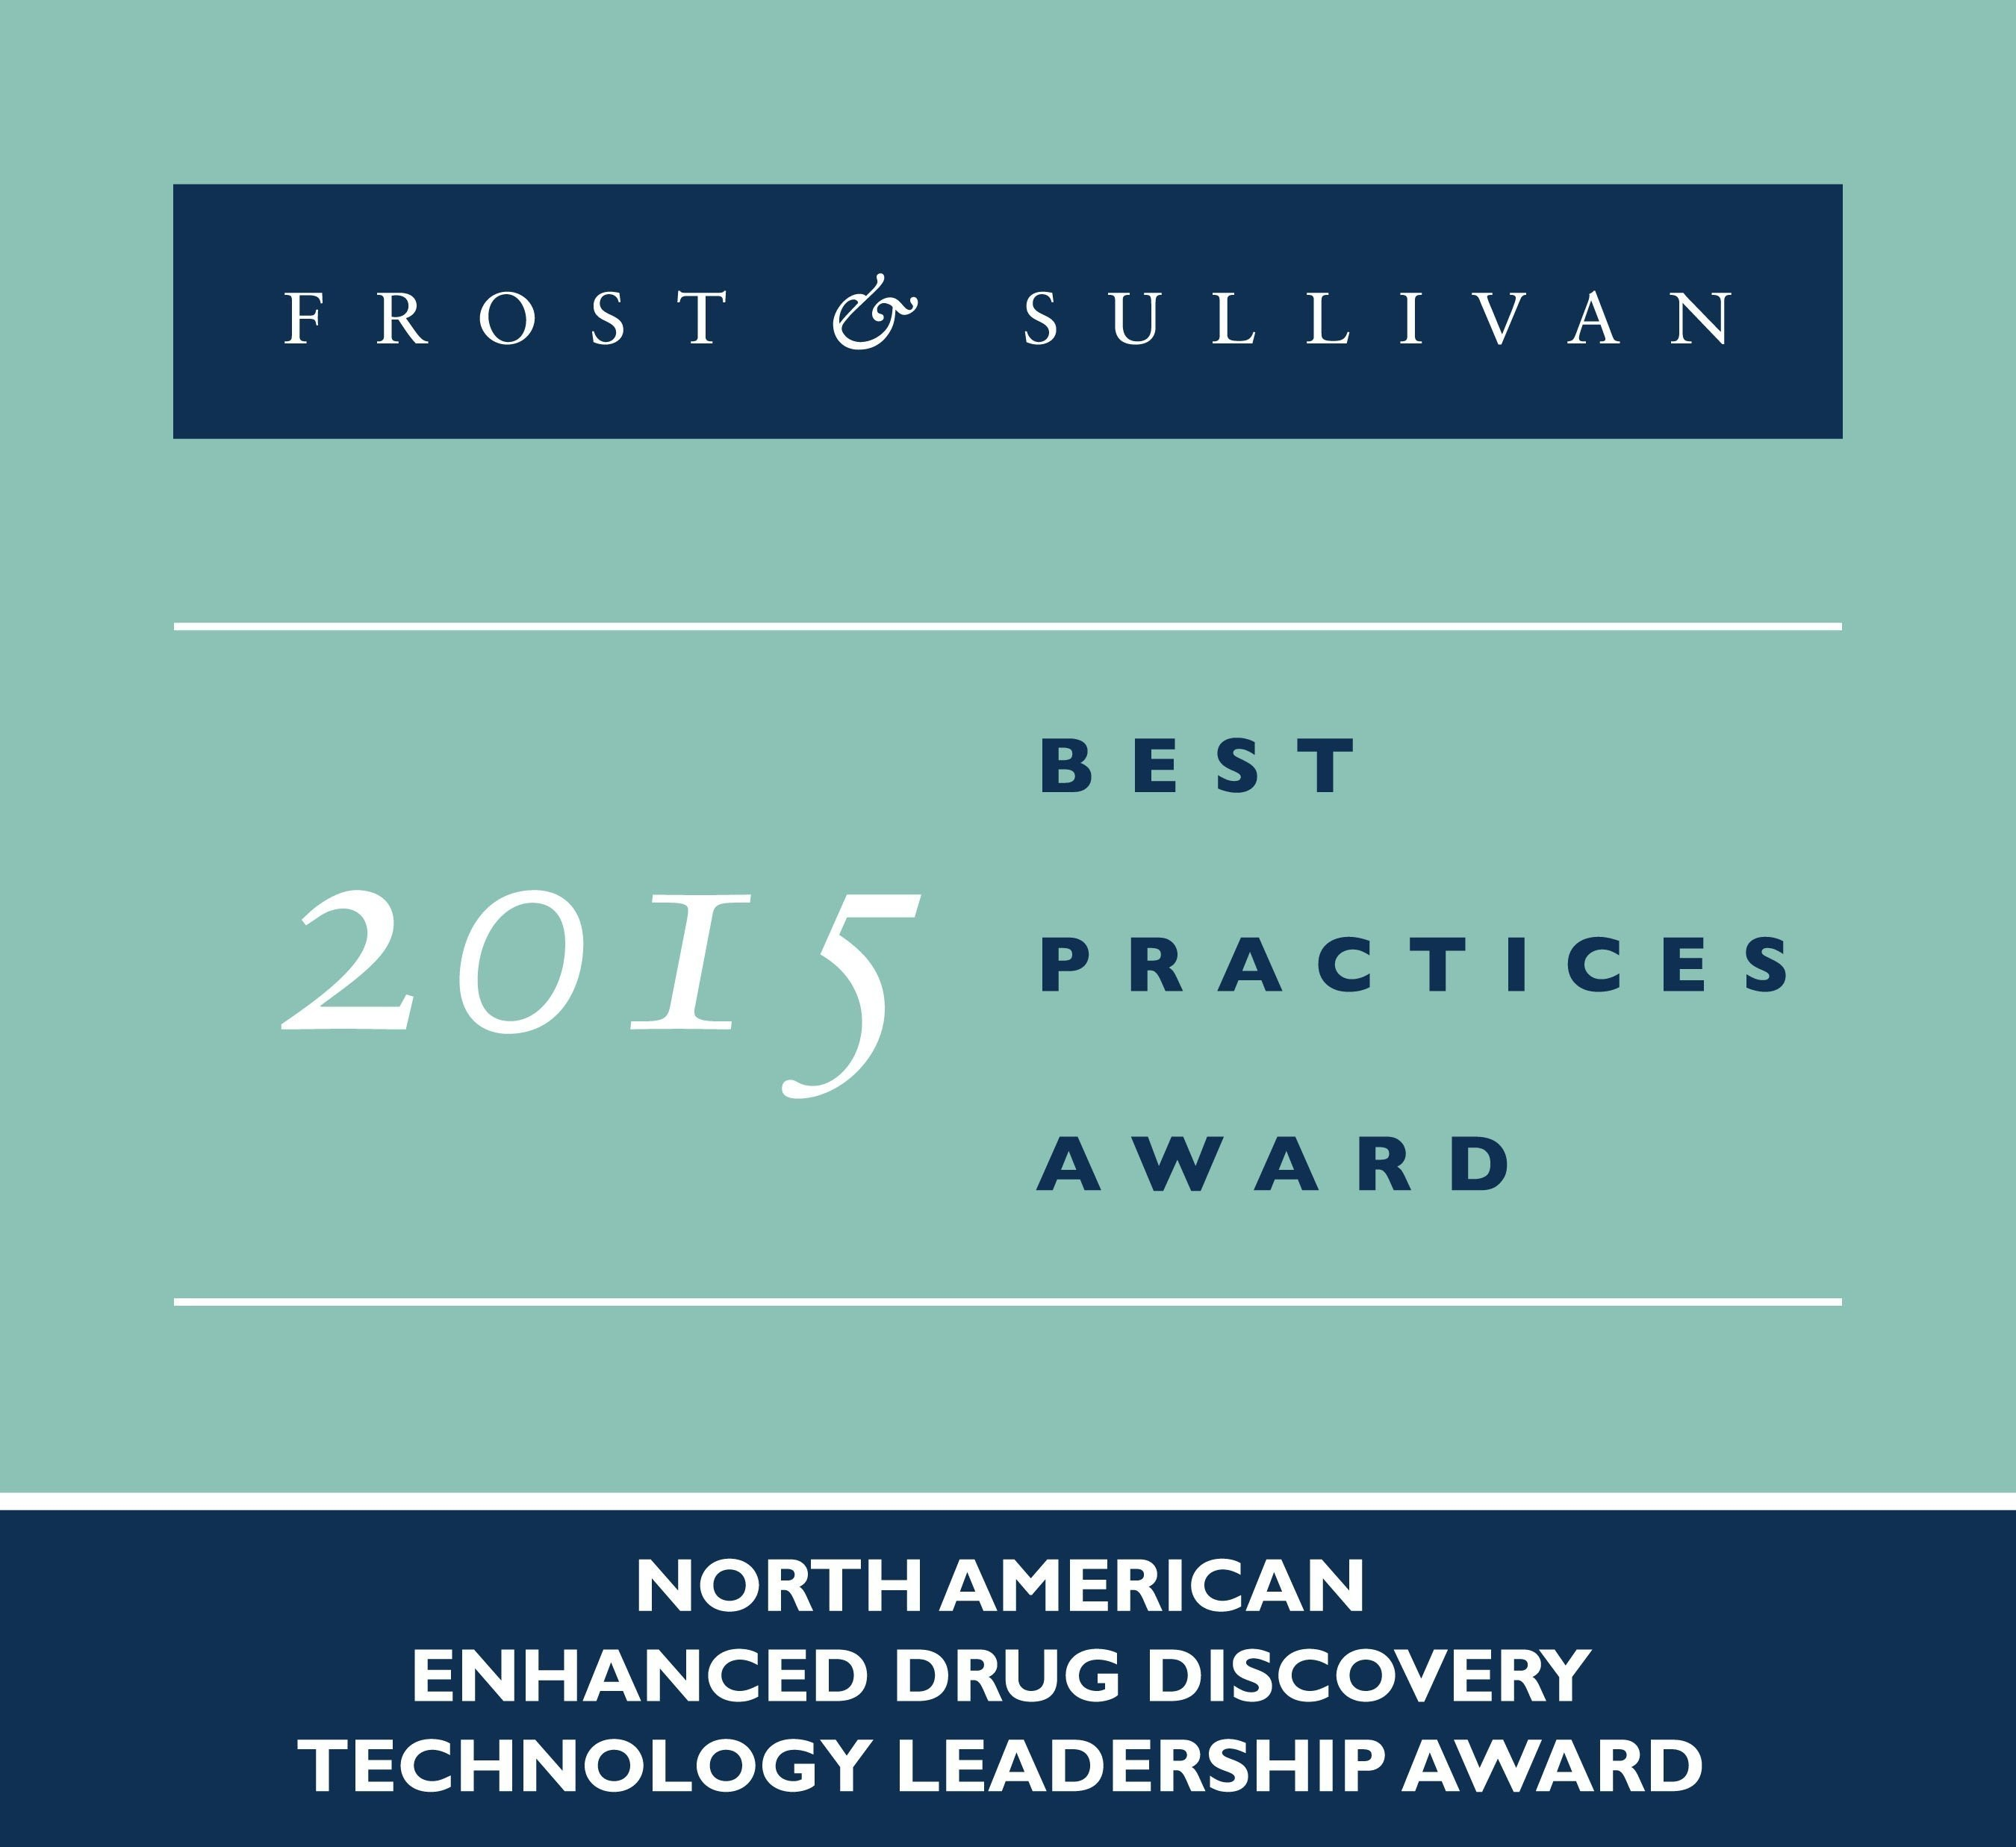 Neopeutics recognized with the 2015 North American Enhanced Drug Discovery Technology Leadership Award